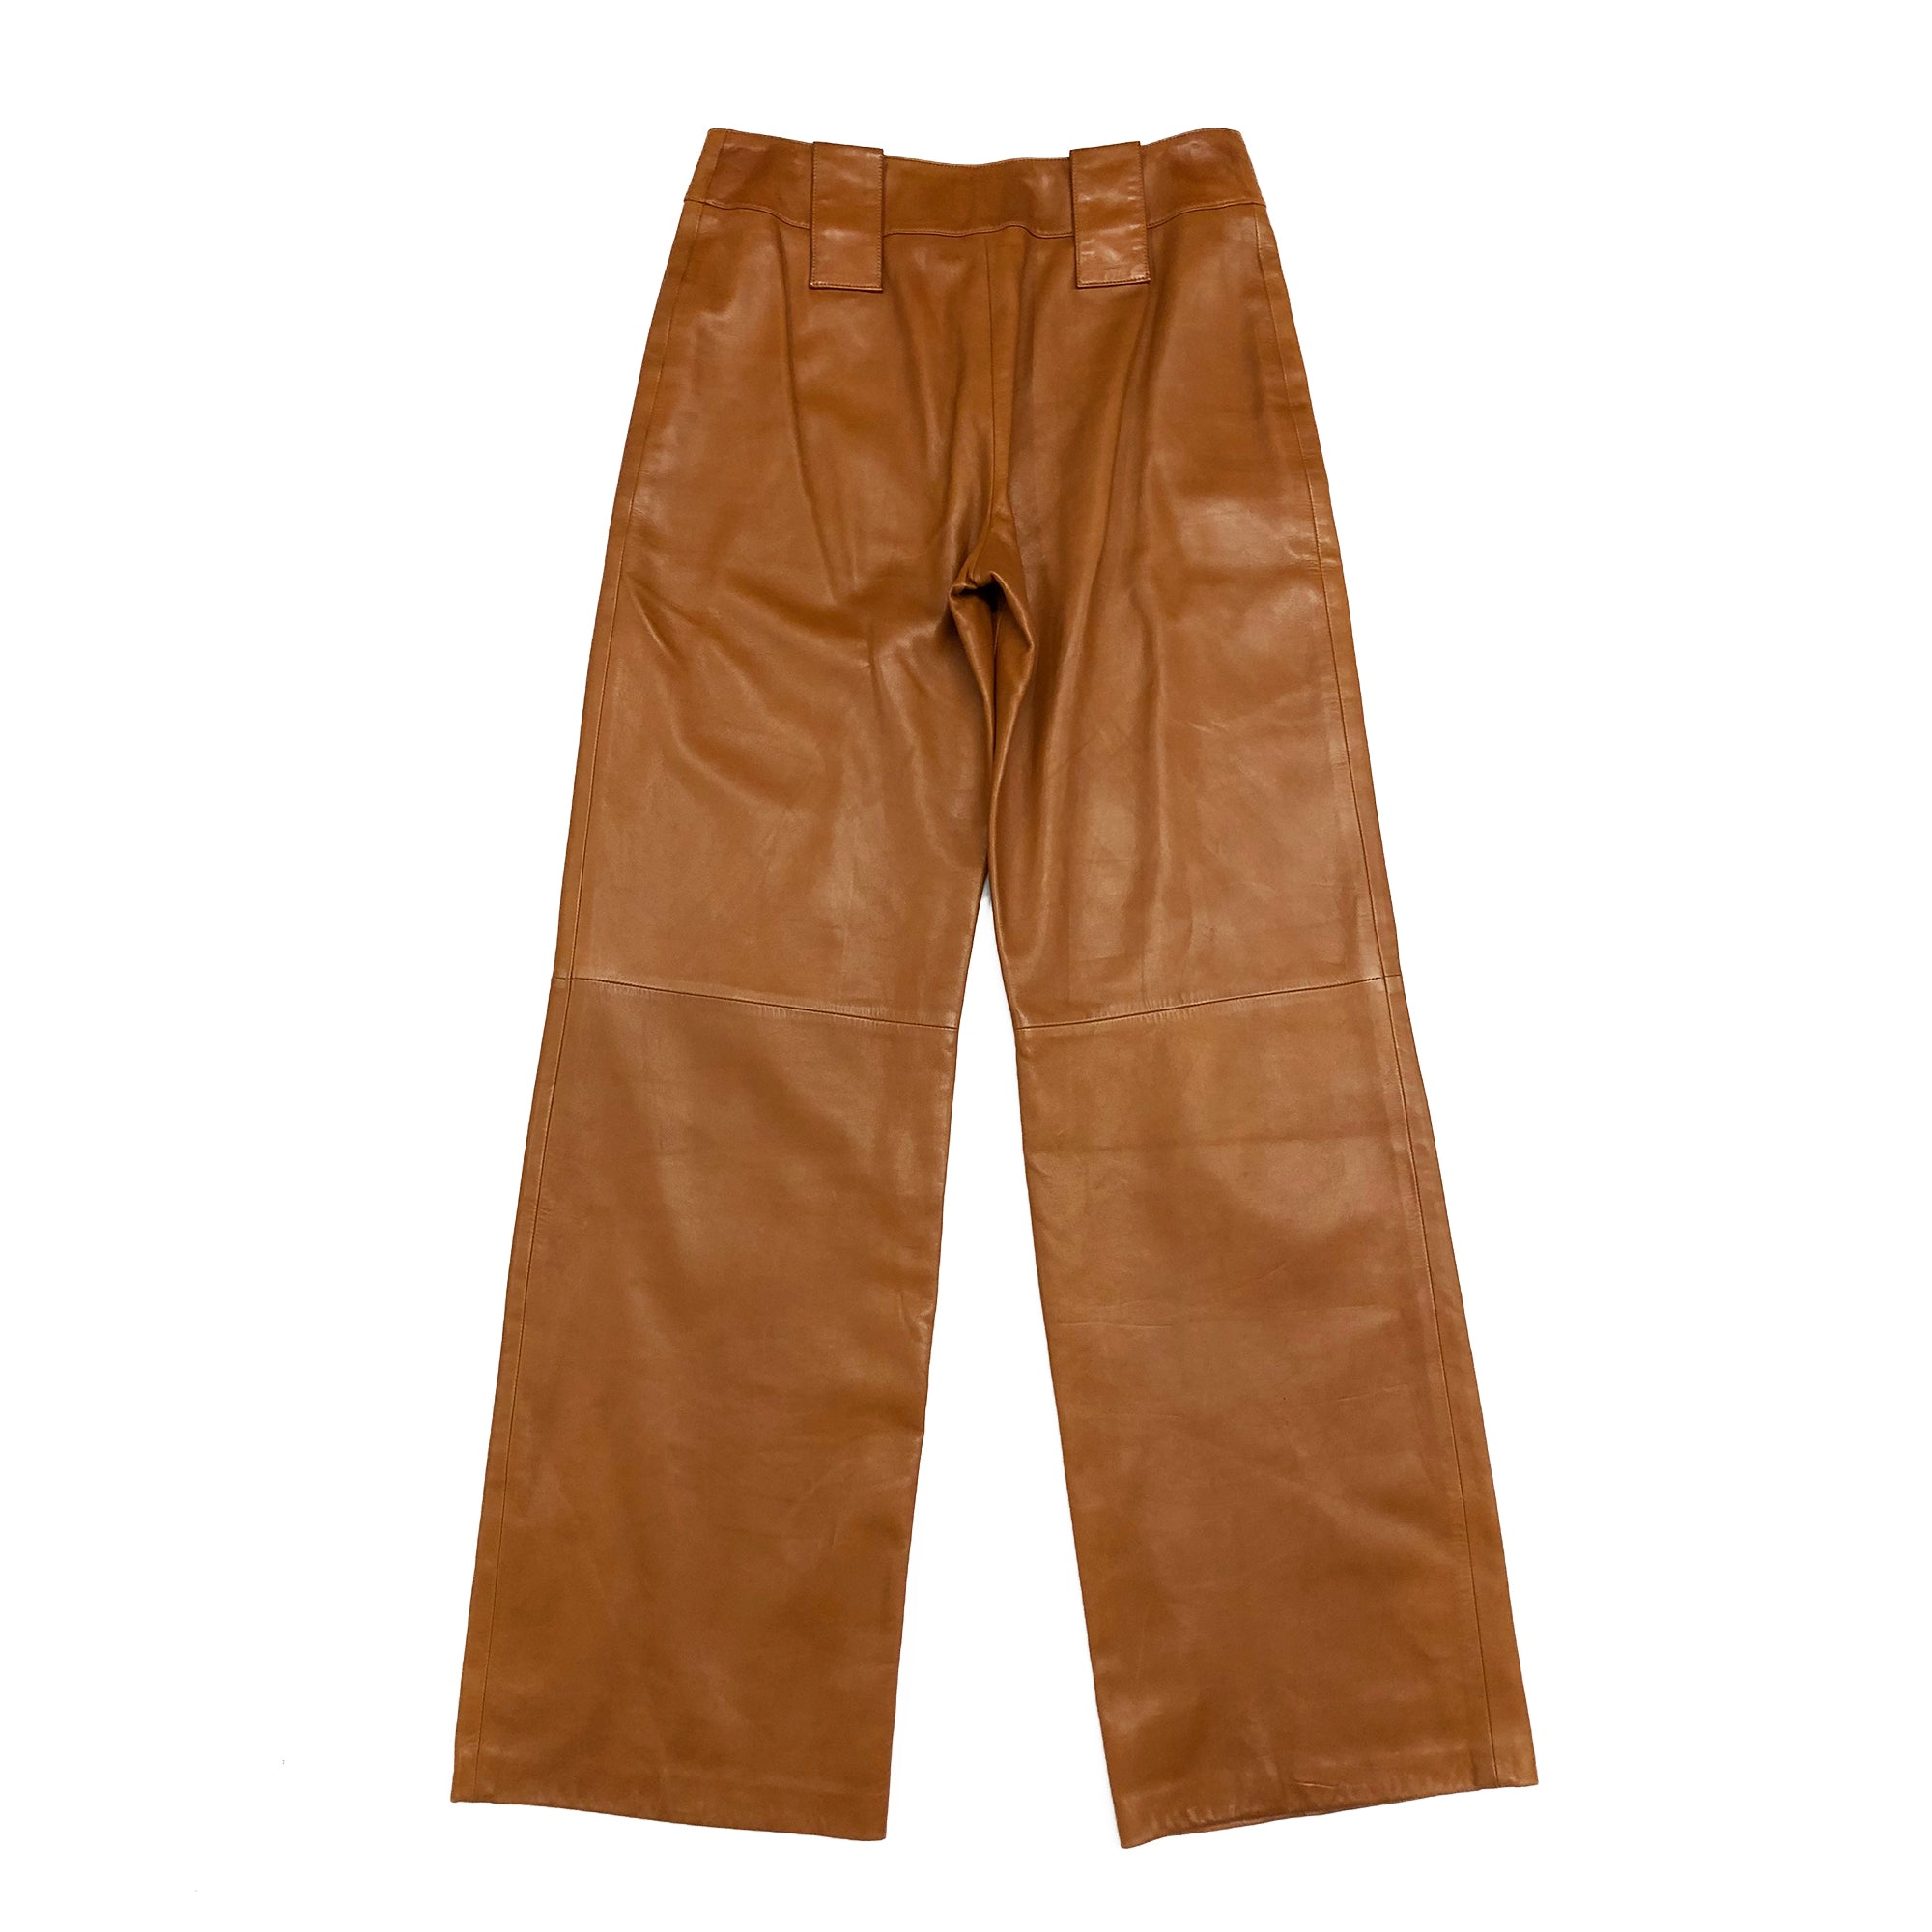 Chanel Butter Leather Trousers (Apricot) UK 8/10